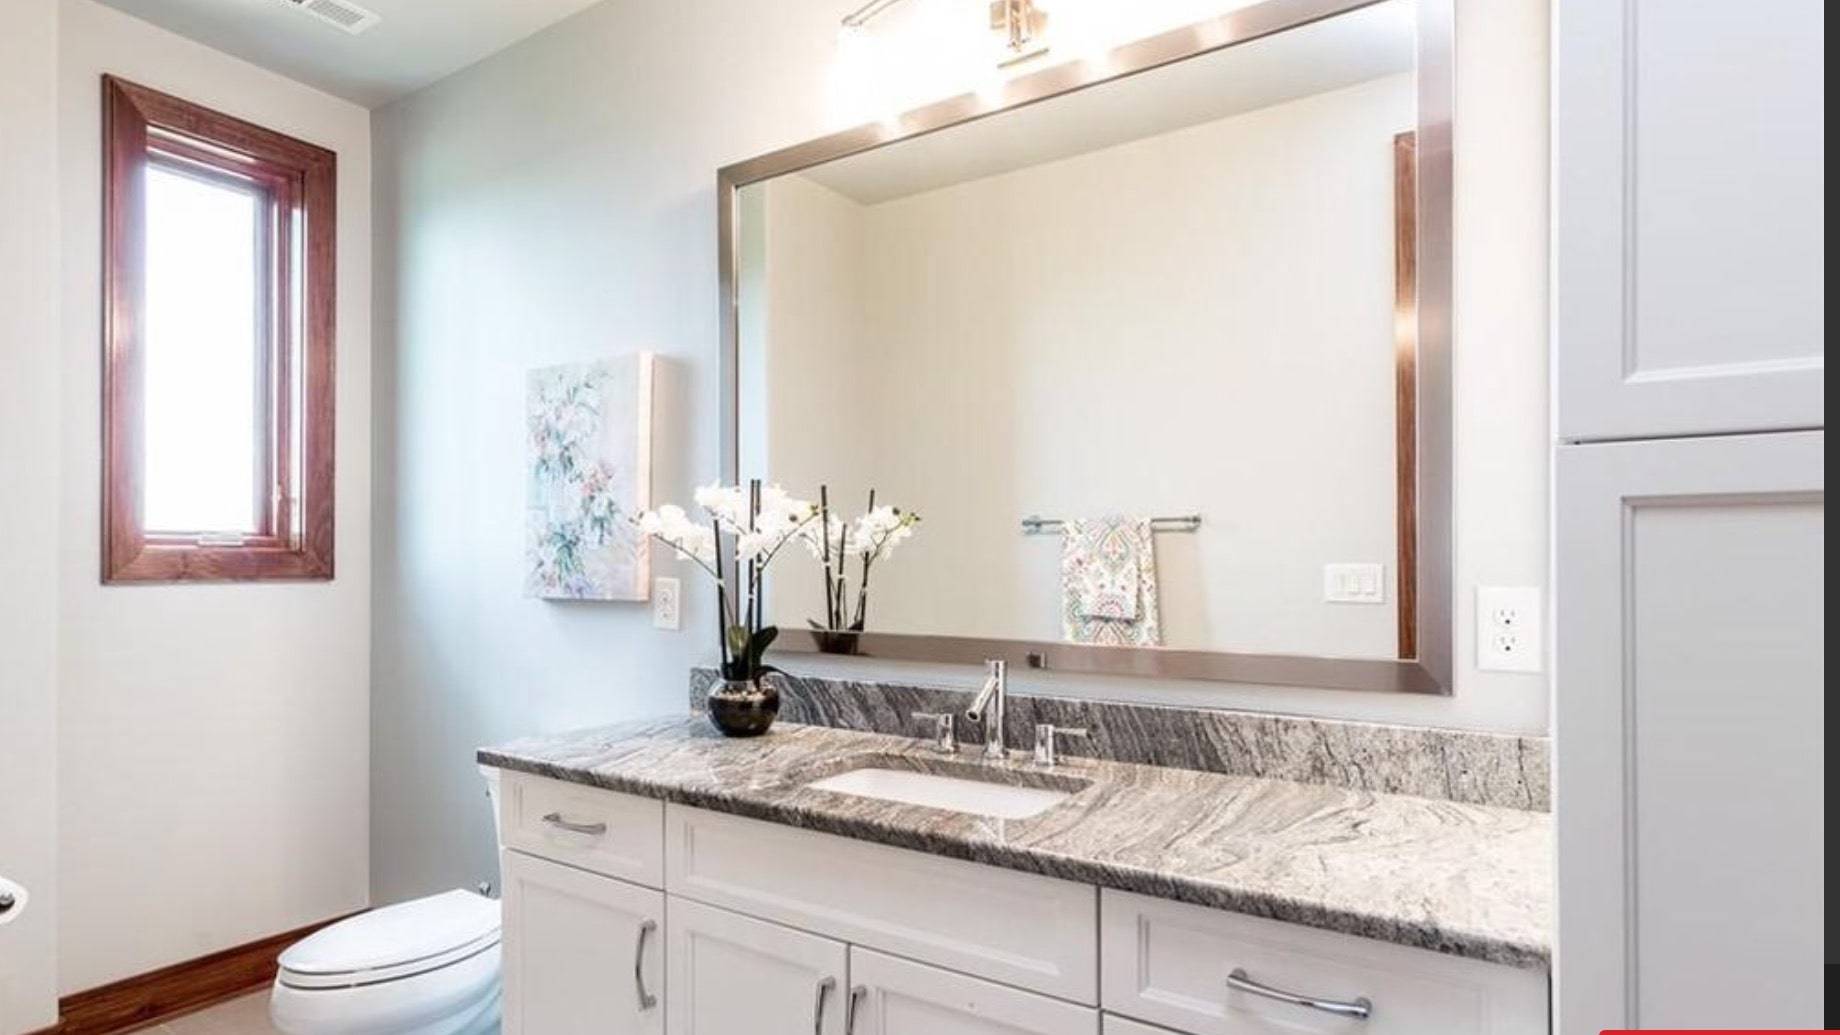 Guest bathroom with granite counter top.